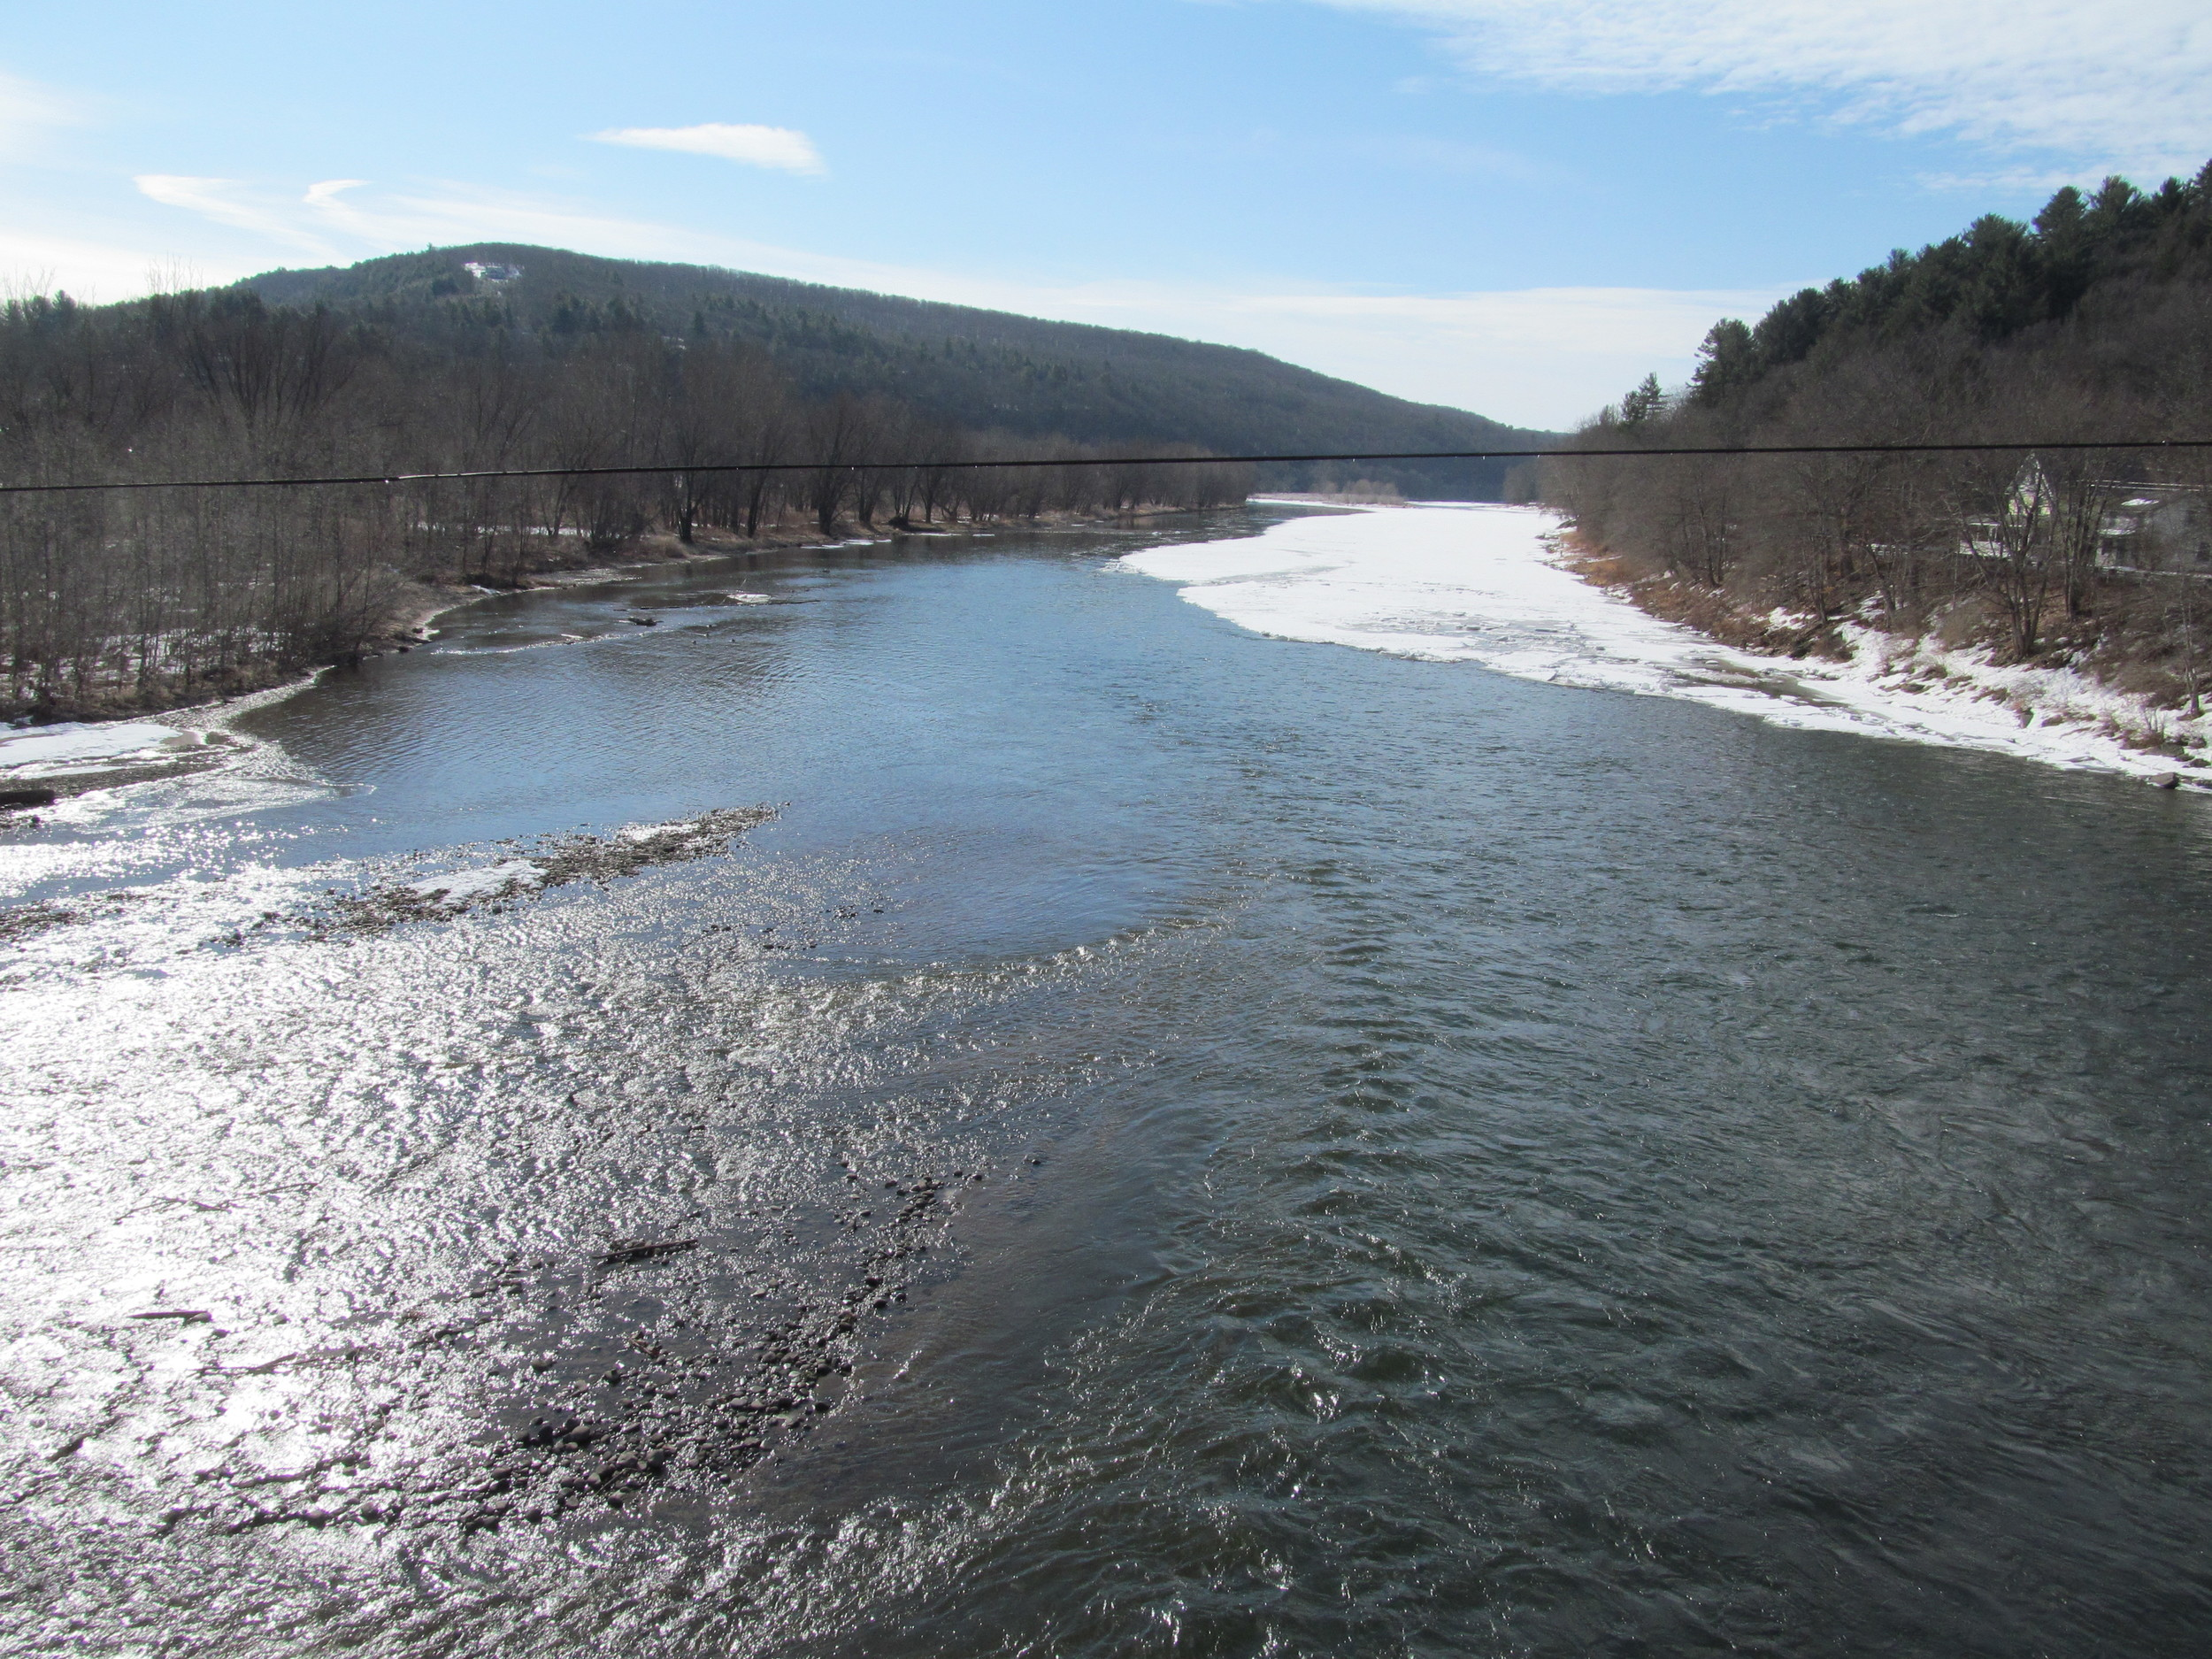 Delaware River, Callicoon, NY looking down river just below the Callicoon creek confluence. As you can see, the ice rebuilds just down river. 4/1/15